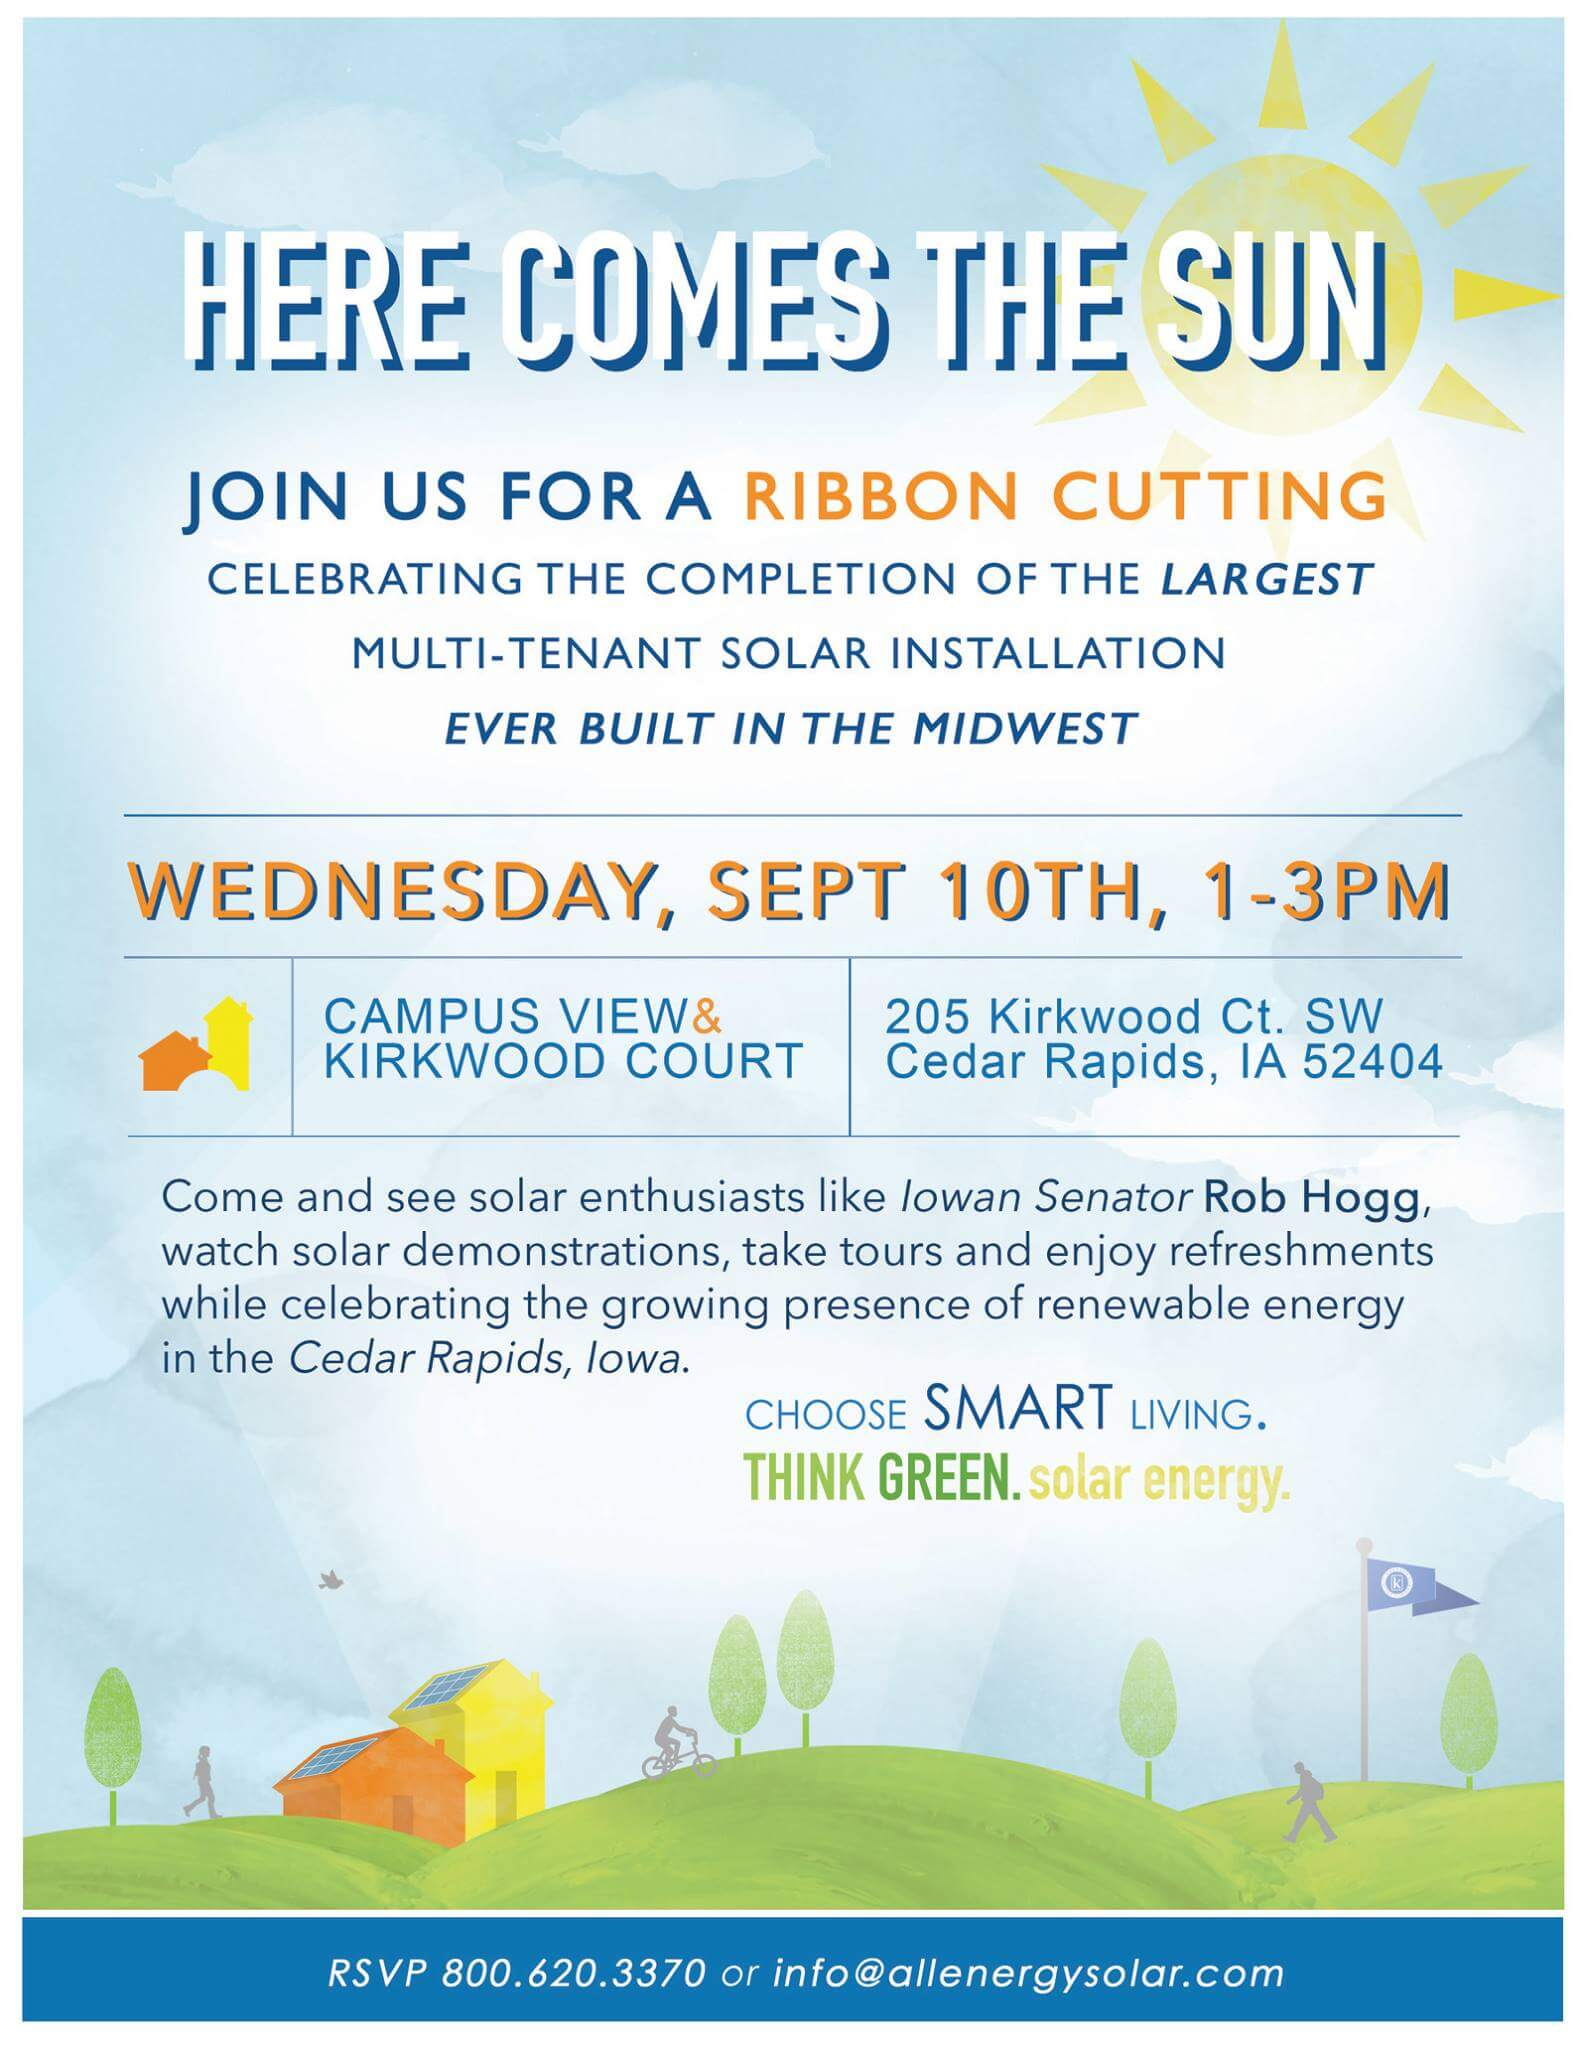 Here Comes the Sun! Kirkwood Courts Apartments Solar Ribbon Cutting on 9/10 from 1-3 pm.